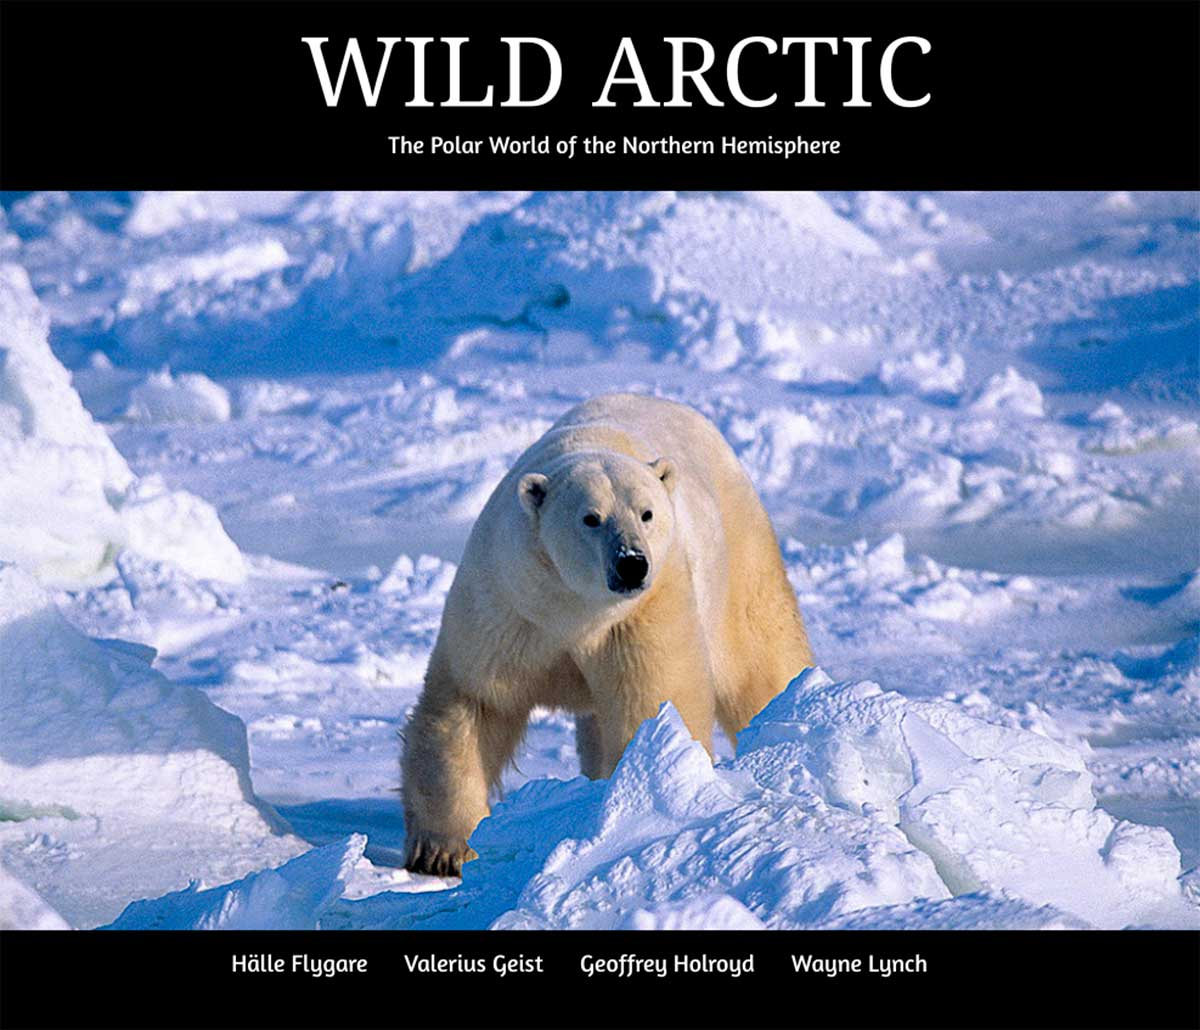 Wild Arctic E book cover by Halle Flygare